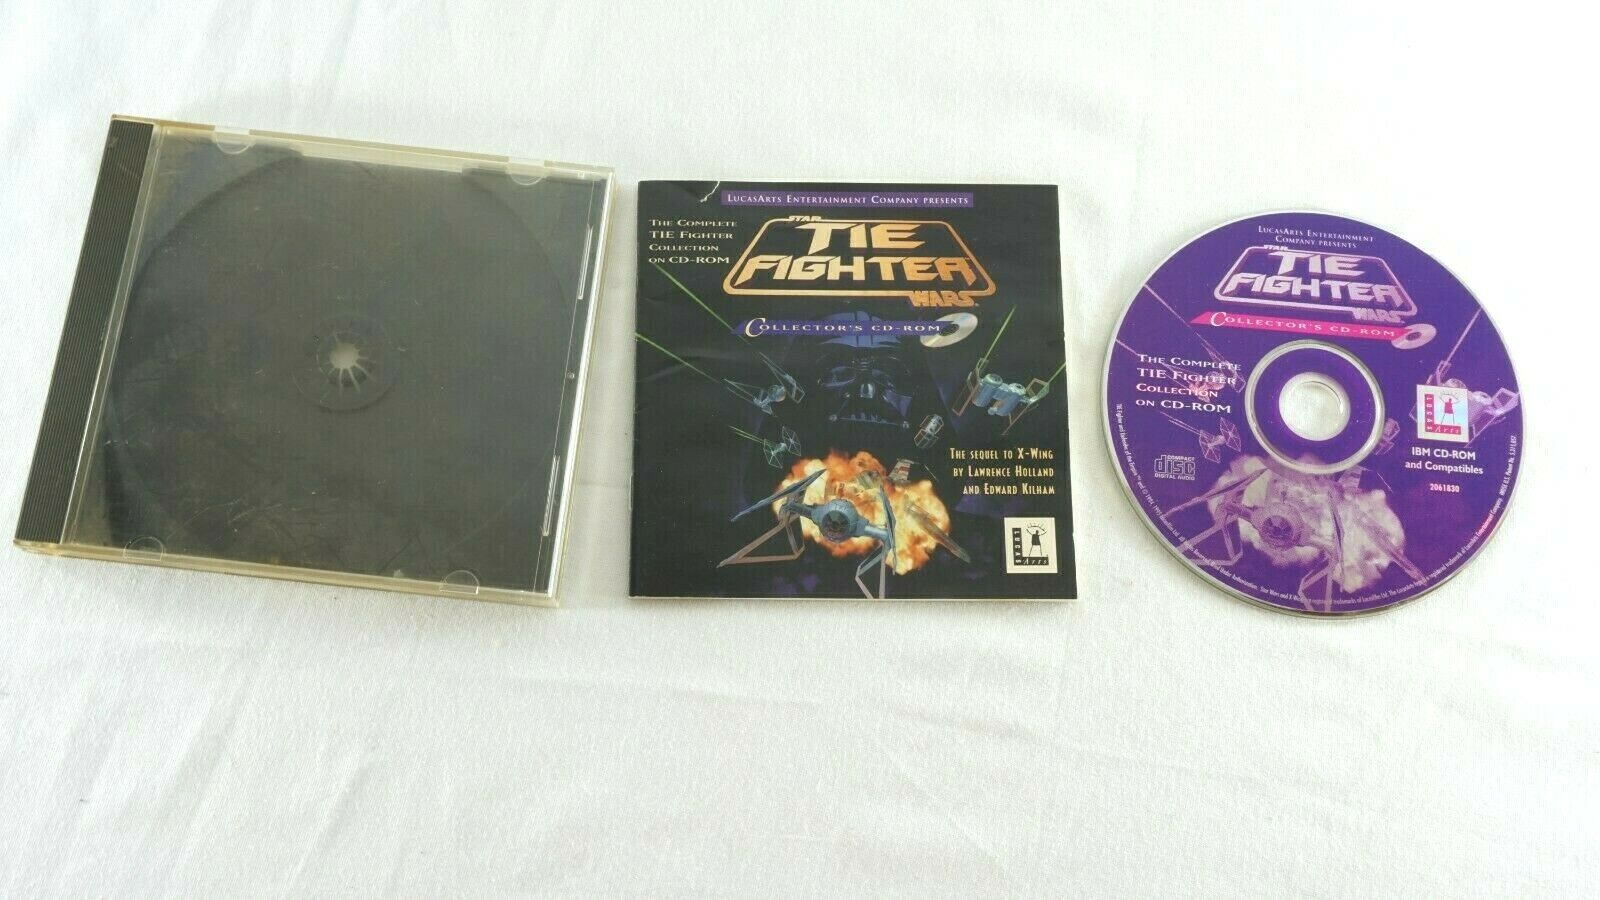 Computer Games - Tie Fighter Computer Game For PC Star Wars Windows 95/98 Collector's CD-ROM war